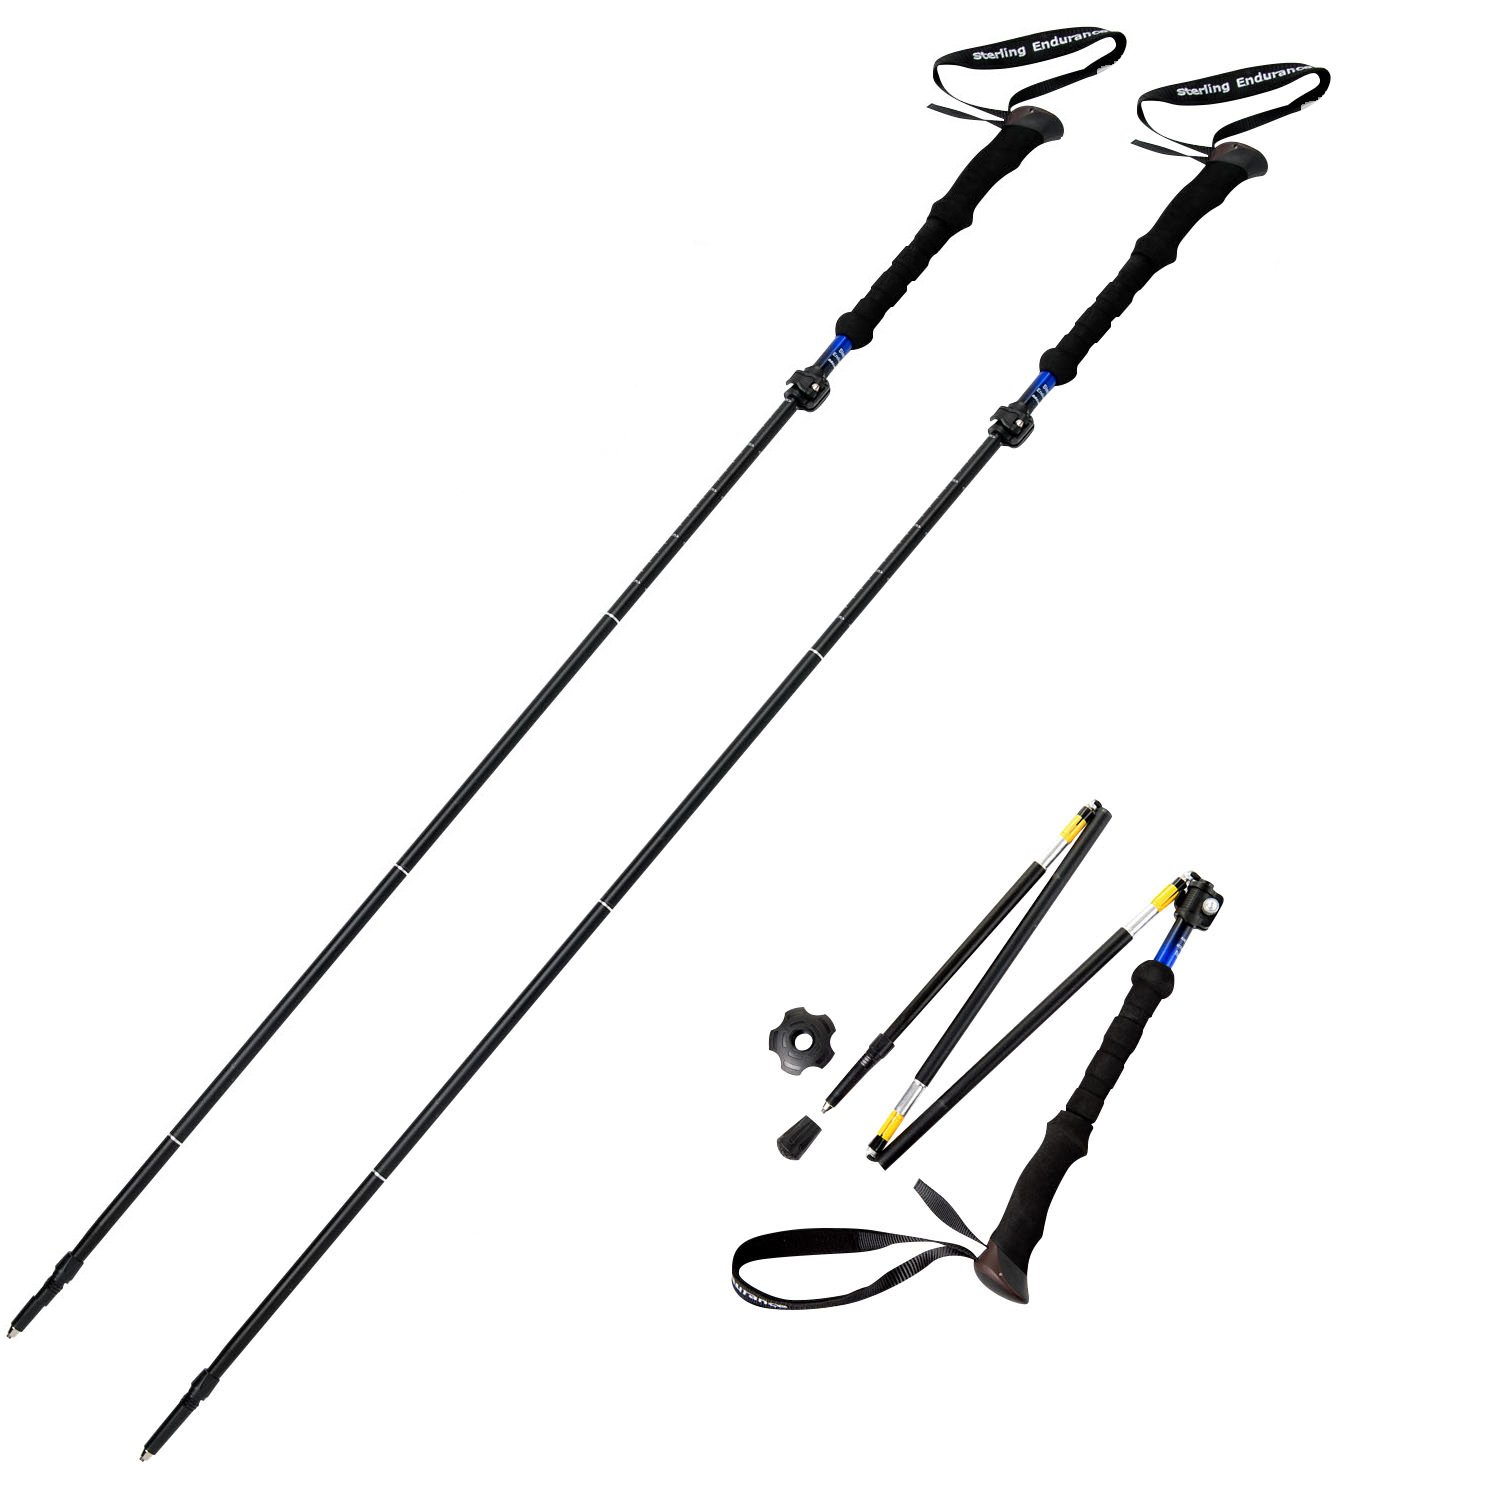 Sterling Endurance Trekking Poles Collapsible to 13 1 2 Hiking Poles Walking Sticks Buy 1 Pole or 2 Poles